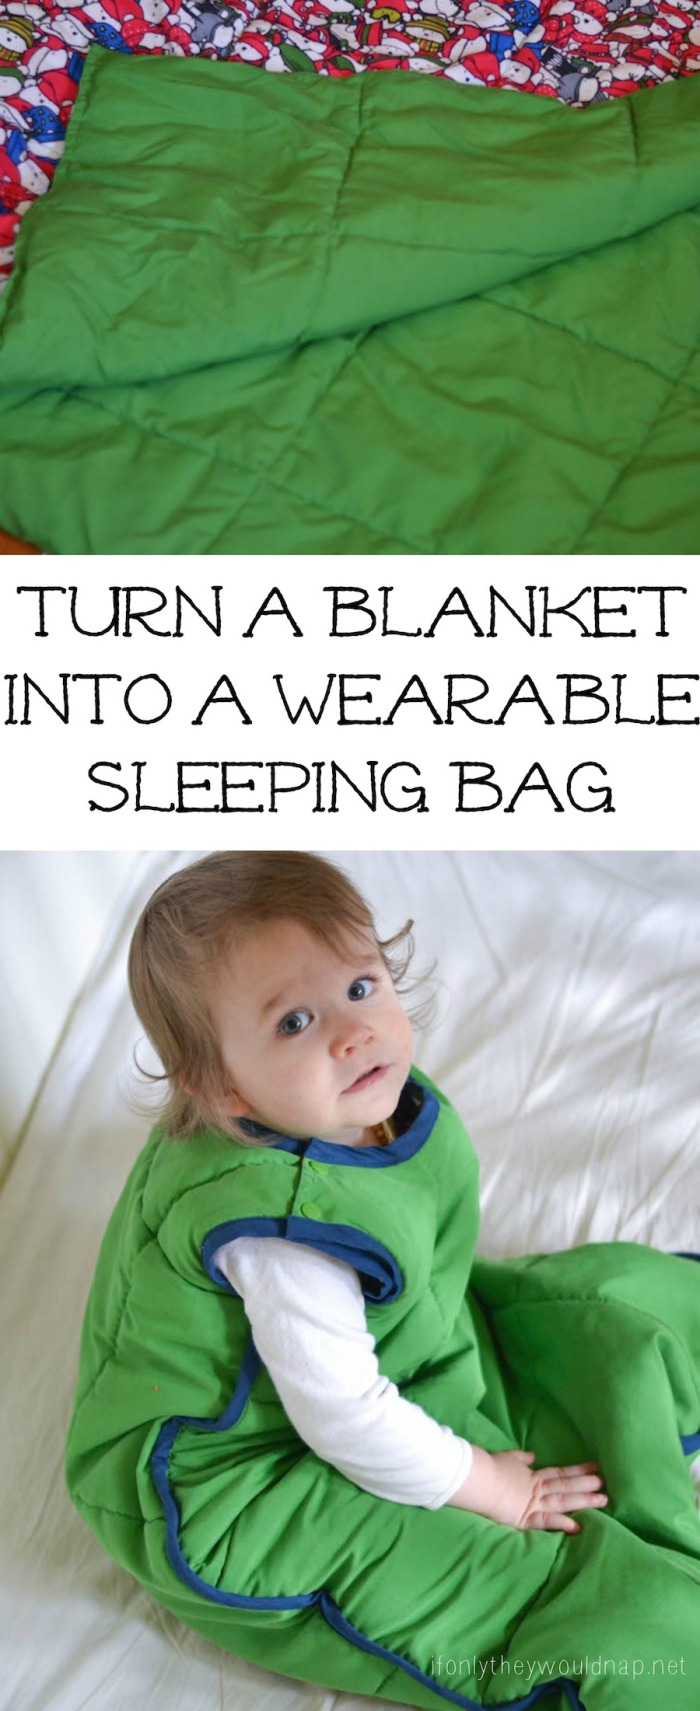 Turn a blanket into a wearable sleeping bag